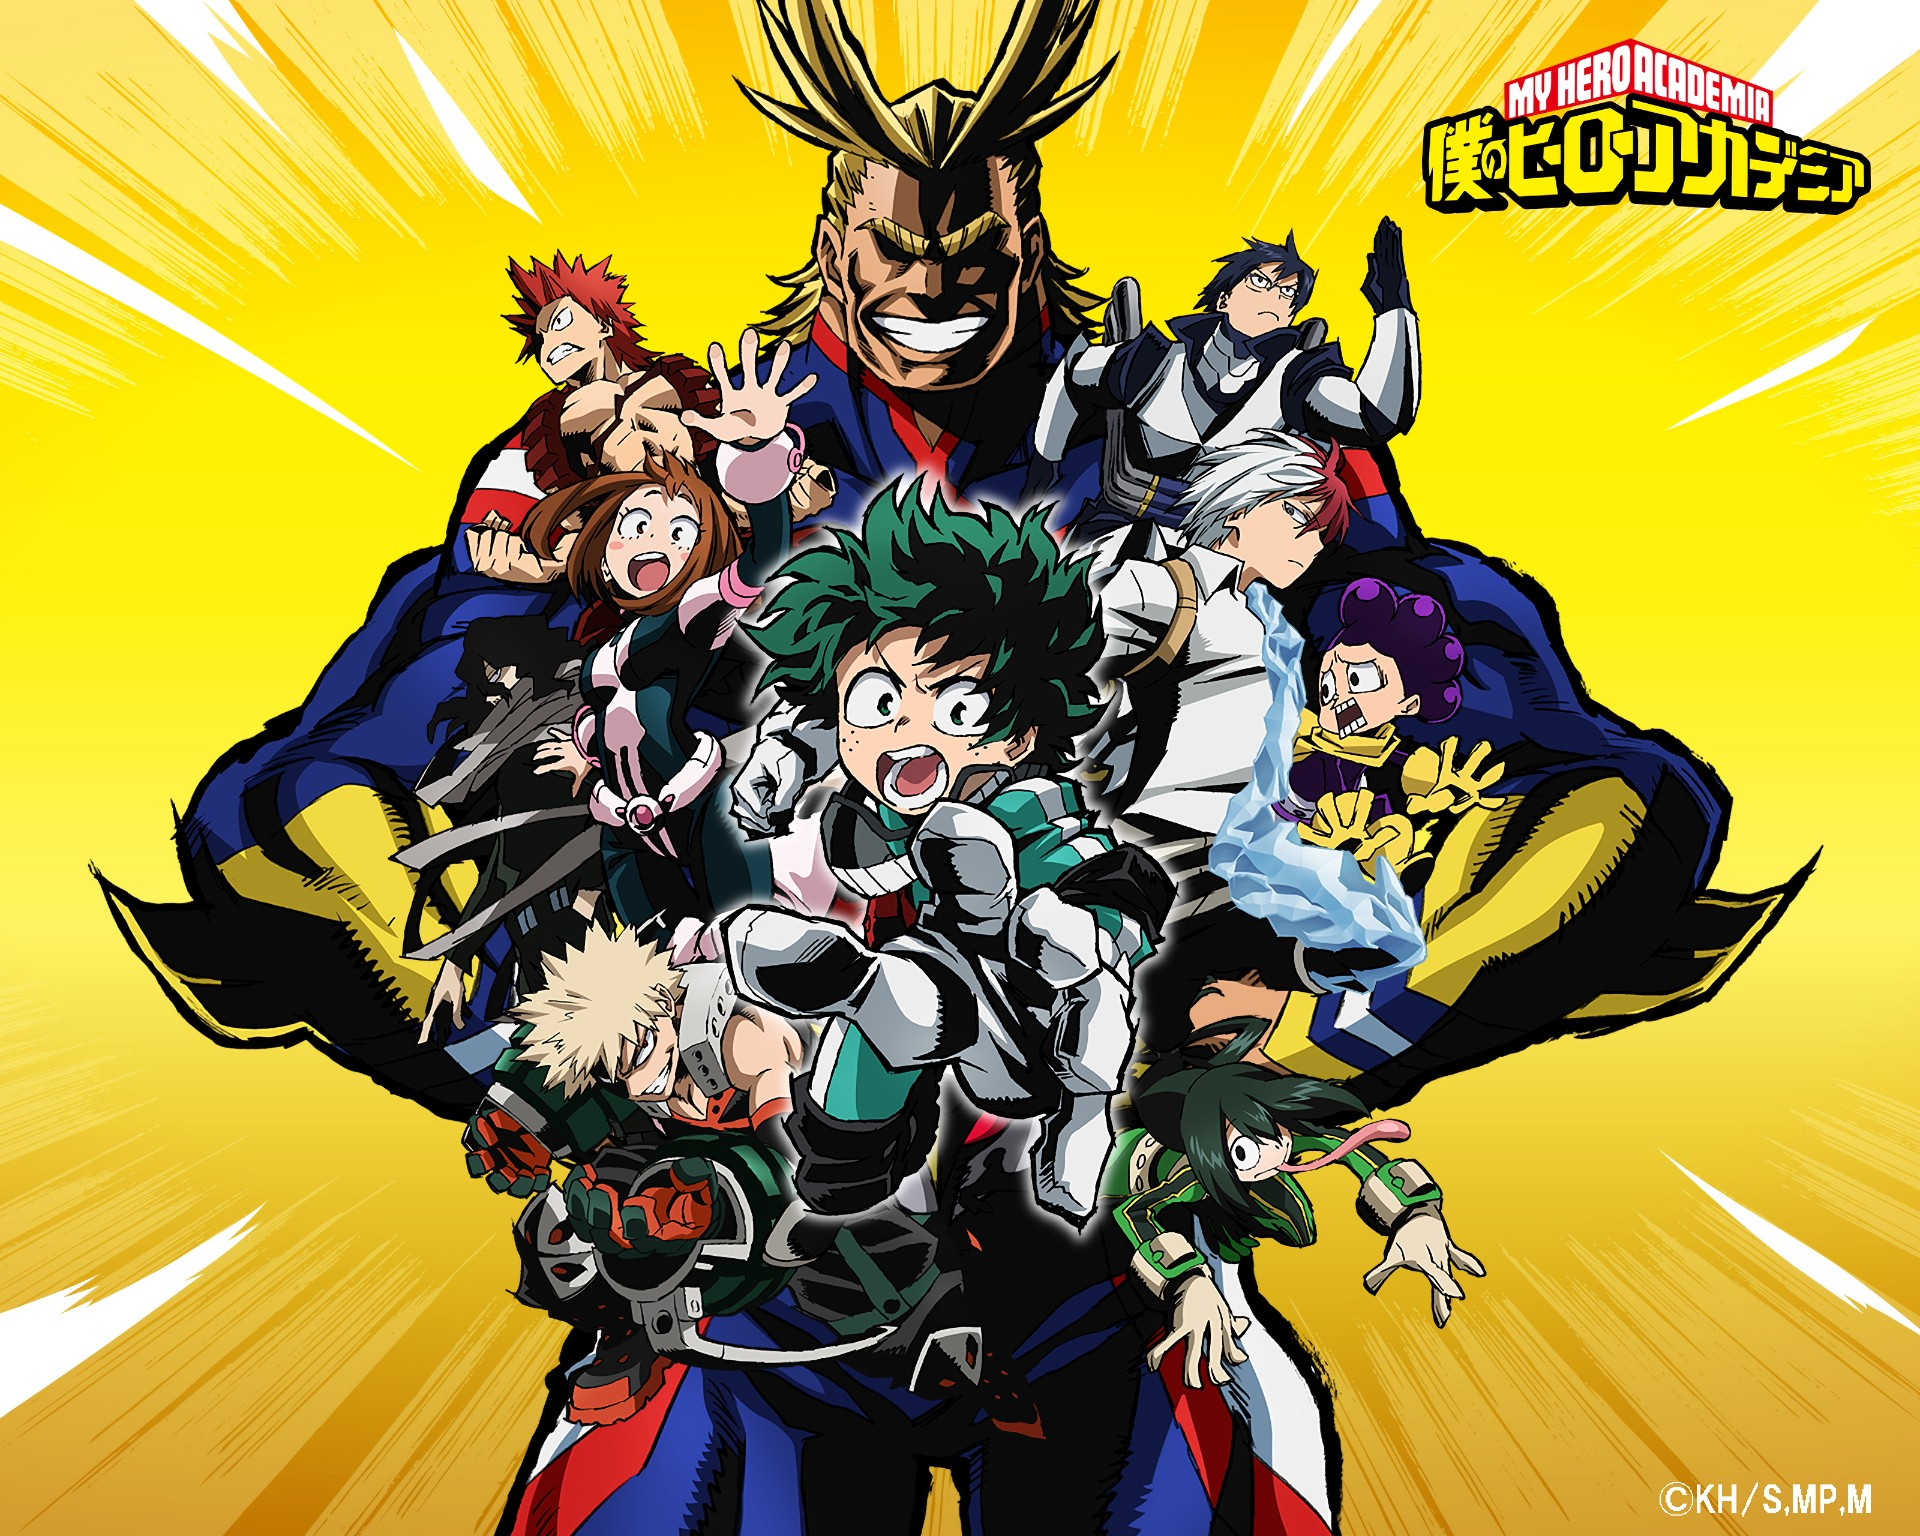 Download my hero academia wallpaper hd 2.0 latest version apk by aldo mt for android free online at apkfab.com. My Hero Academia wallpaper ·① Download free amazing ...